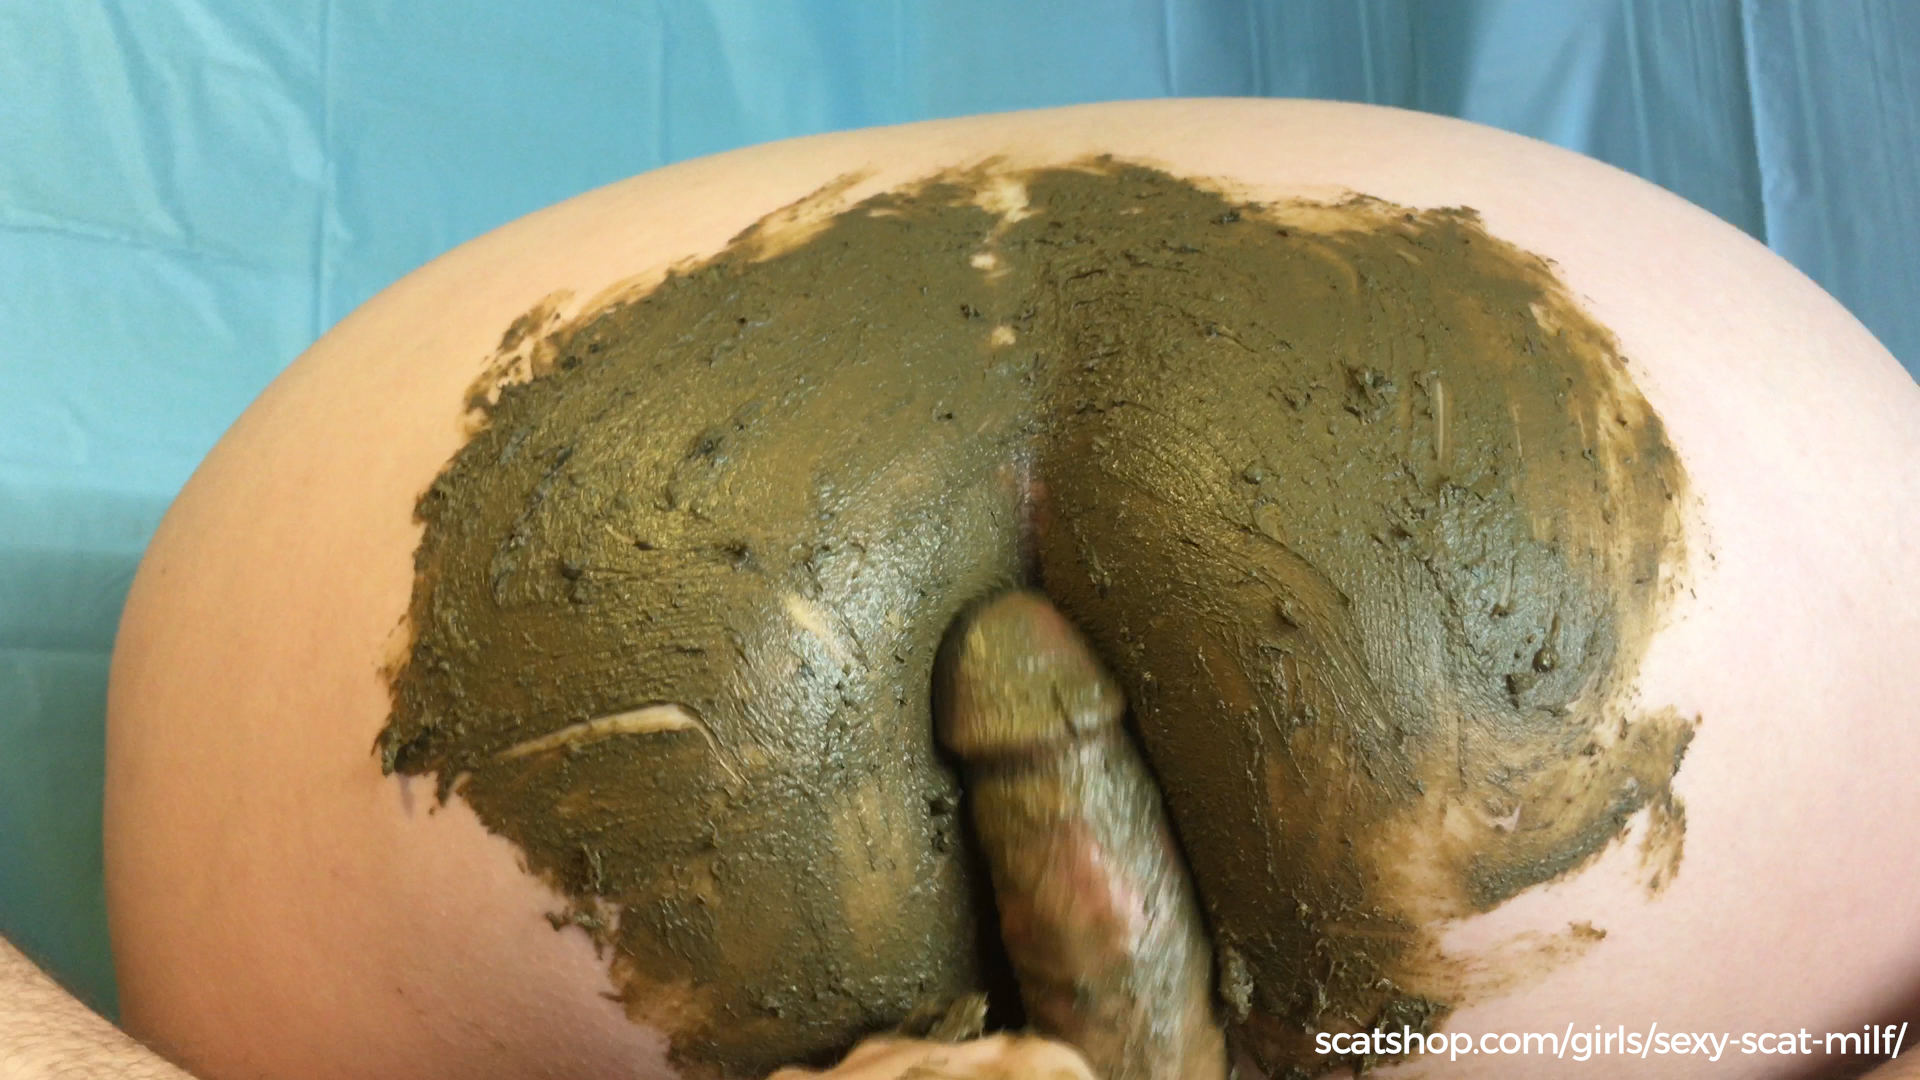 Sexy Scat Milf - New Years Gift. Pee & Poo Smearing on My Ass